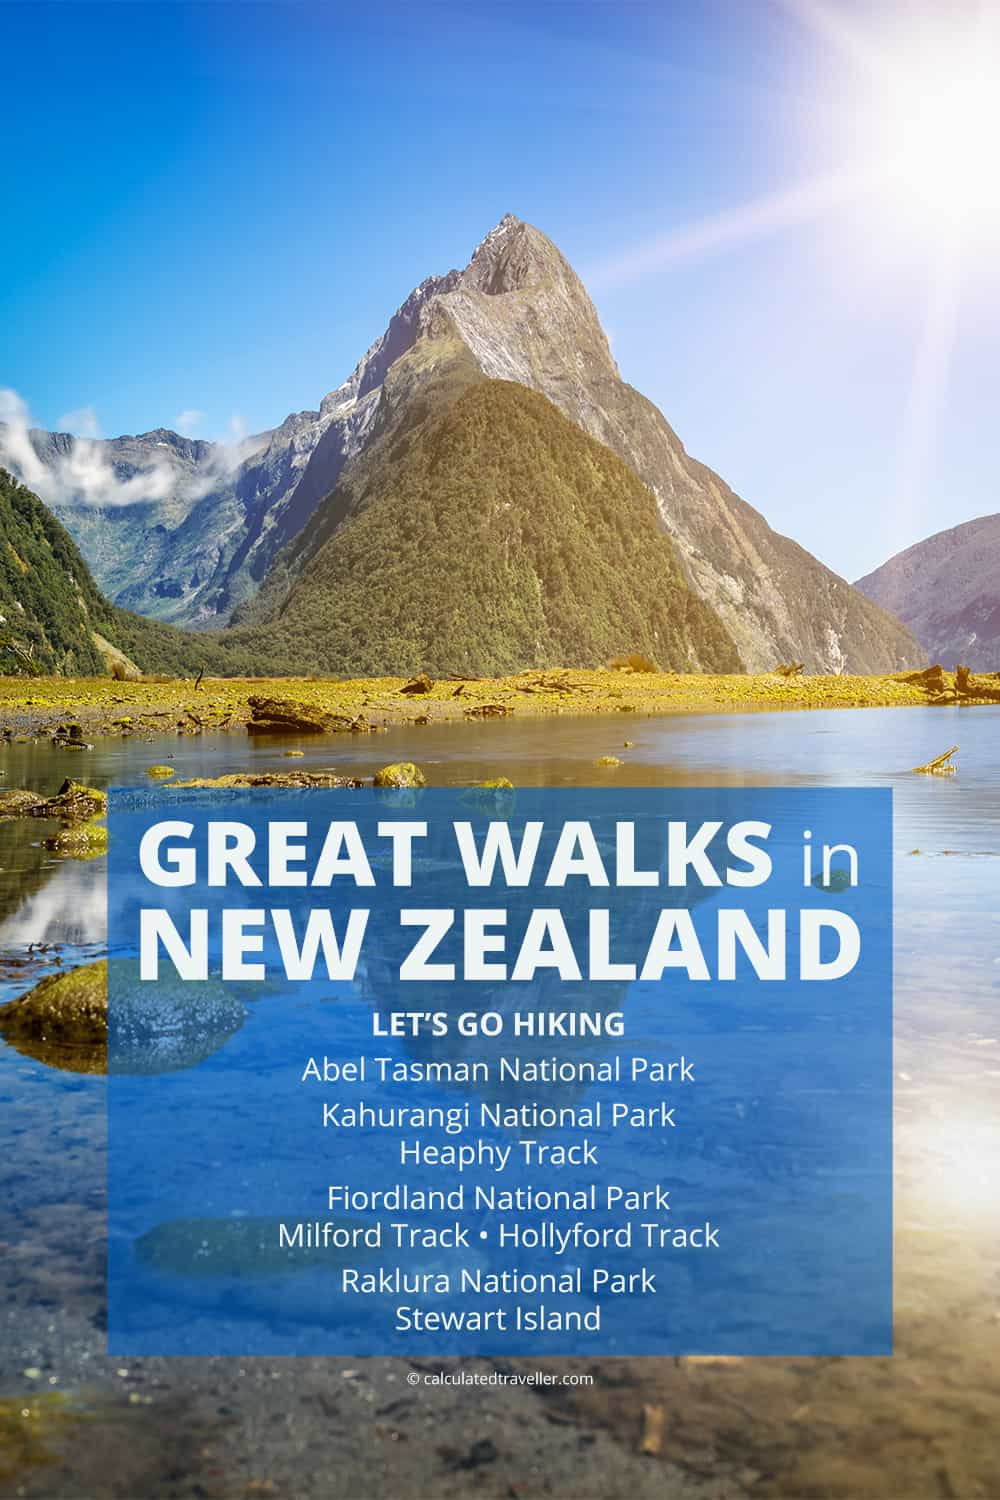 Great Walks in New Zealand - Milford Track